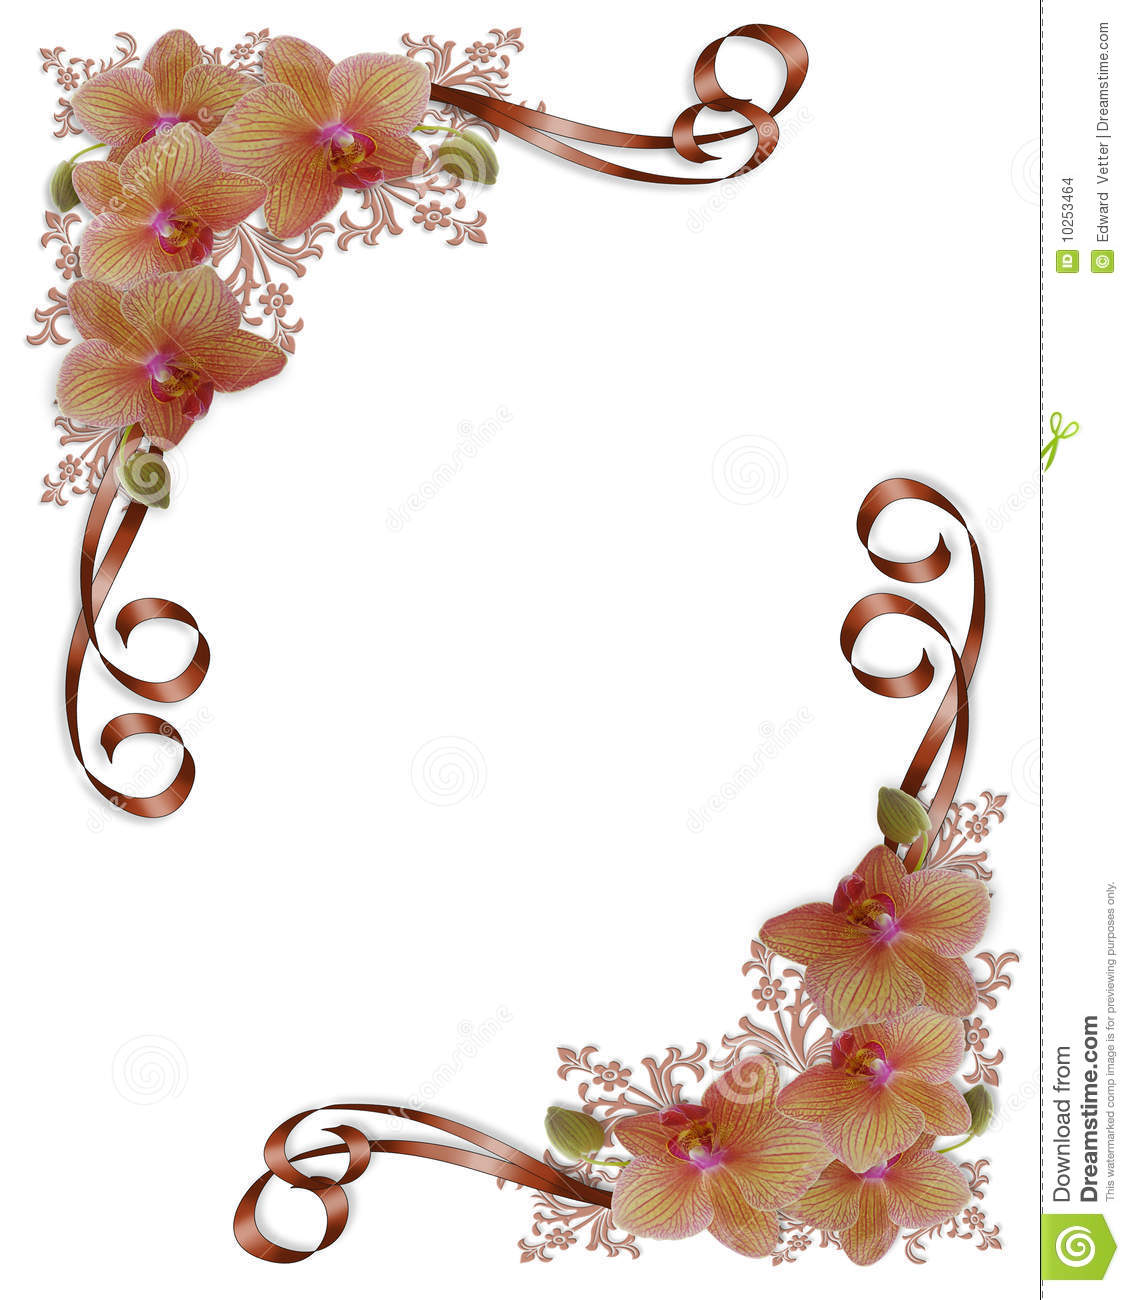 Orchids Floral Wedding Border Stock Images - Image: 10253464